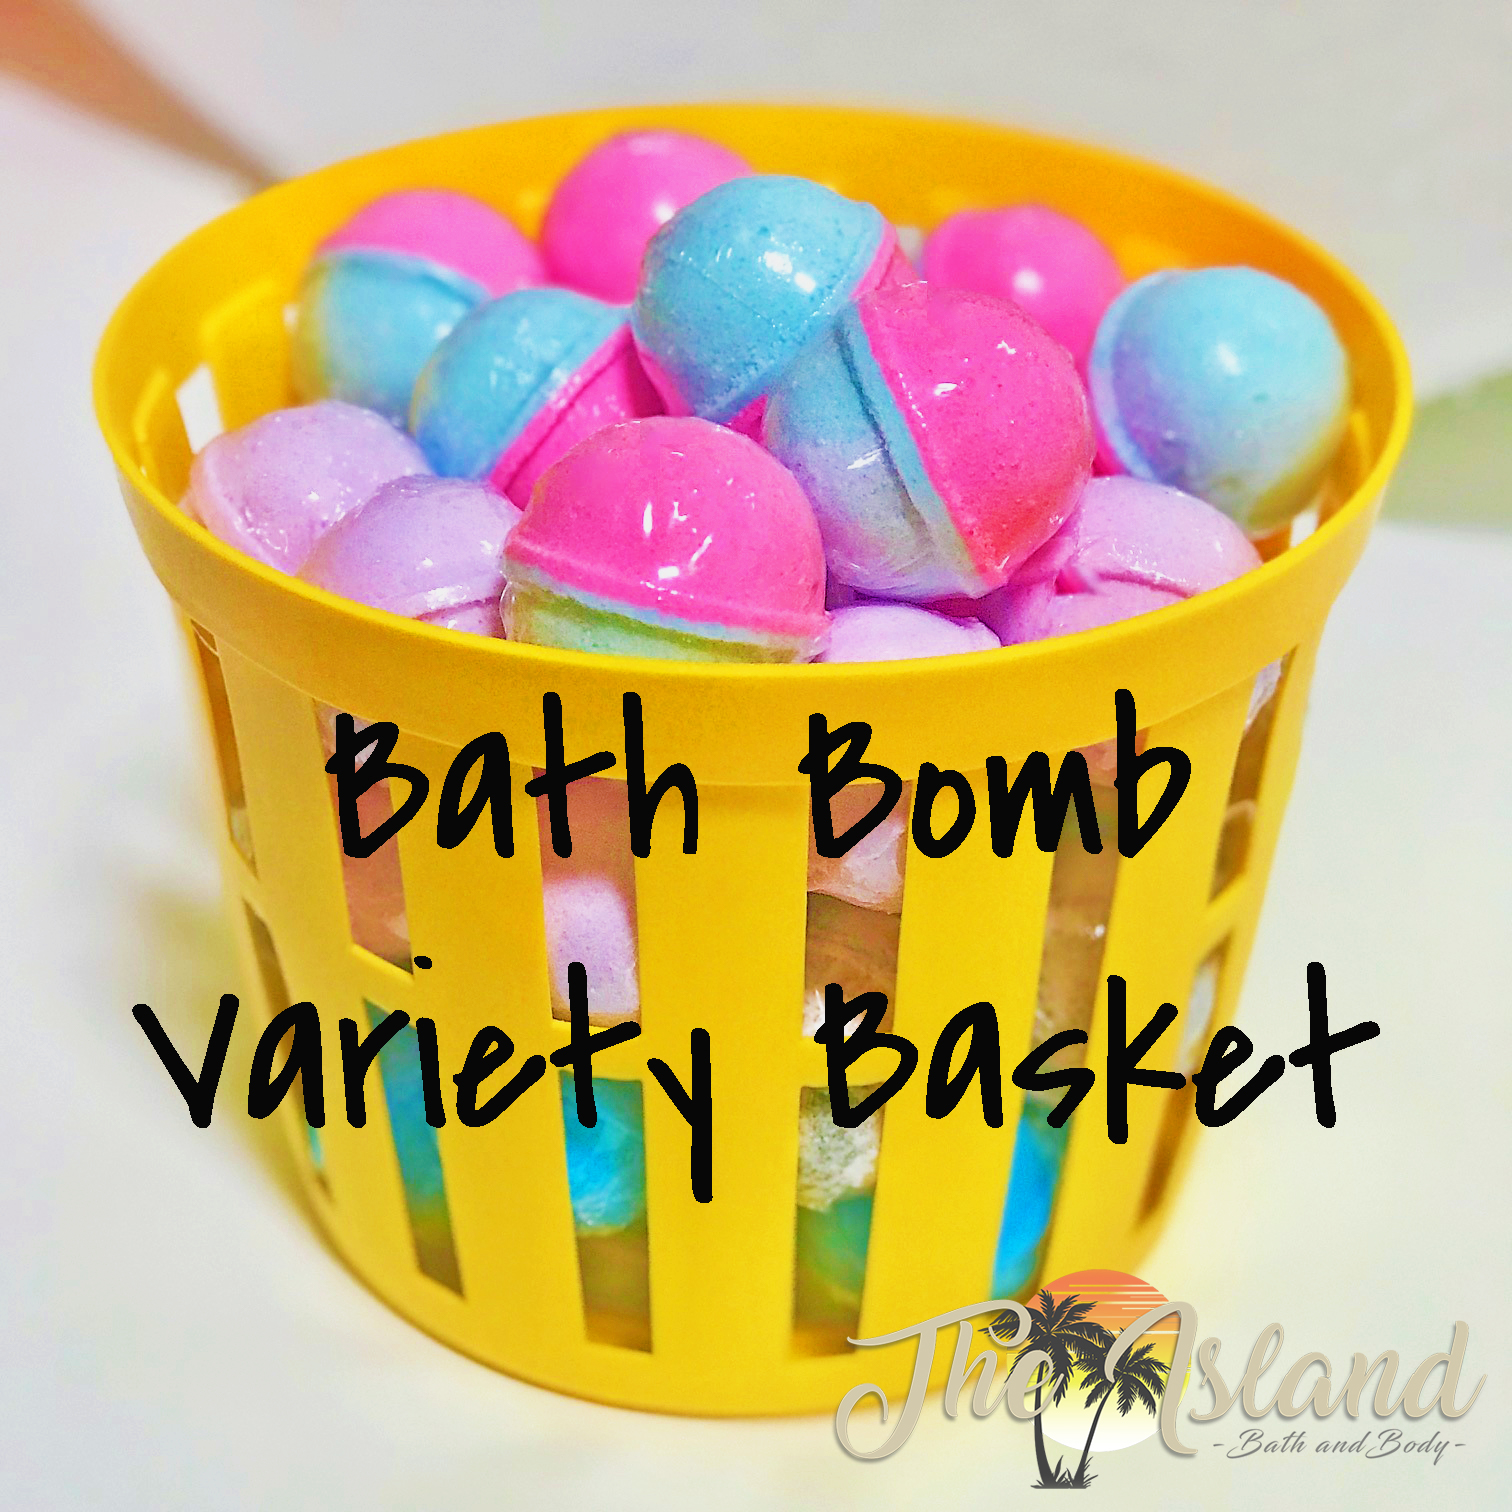 45 Count 2 oz Bath Bombs Variety Basket